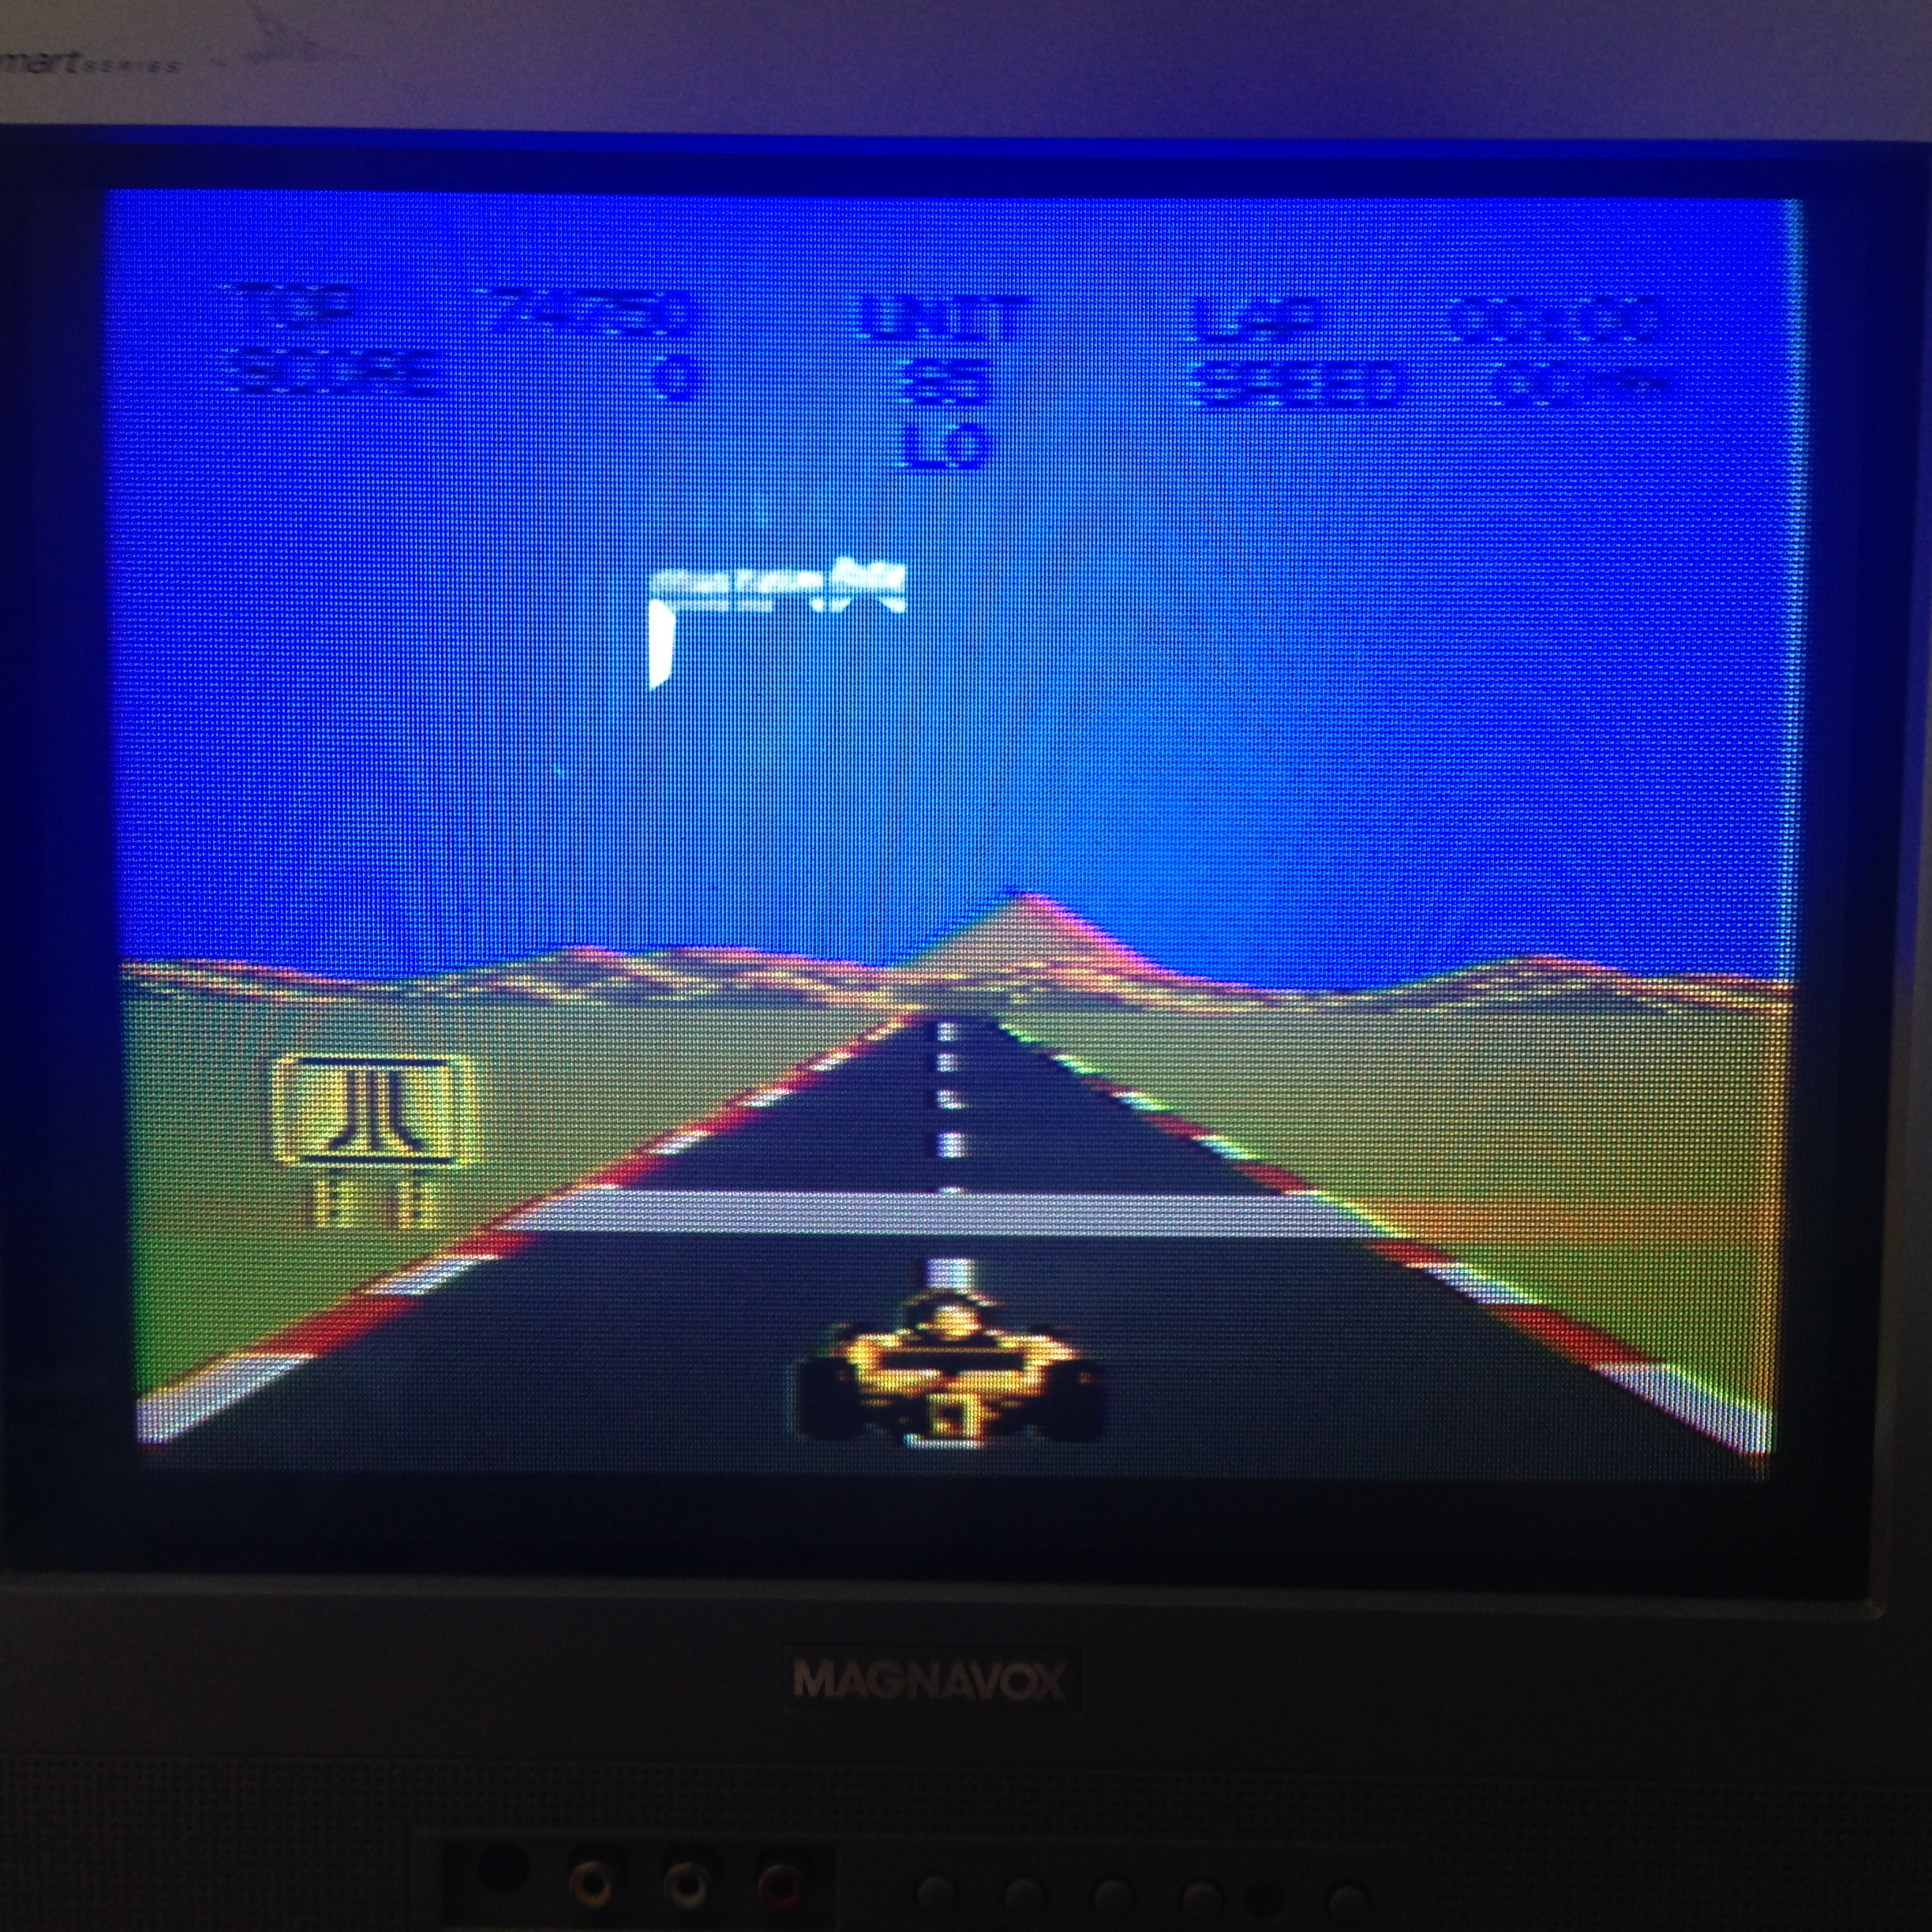 HexNash: Pole Position 2: Test Track (Atari 7800) 74,750 points on 2014-05-08 15:30:40